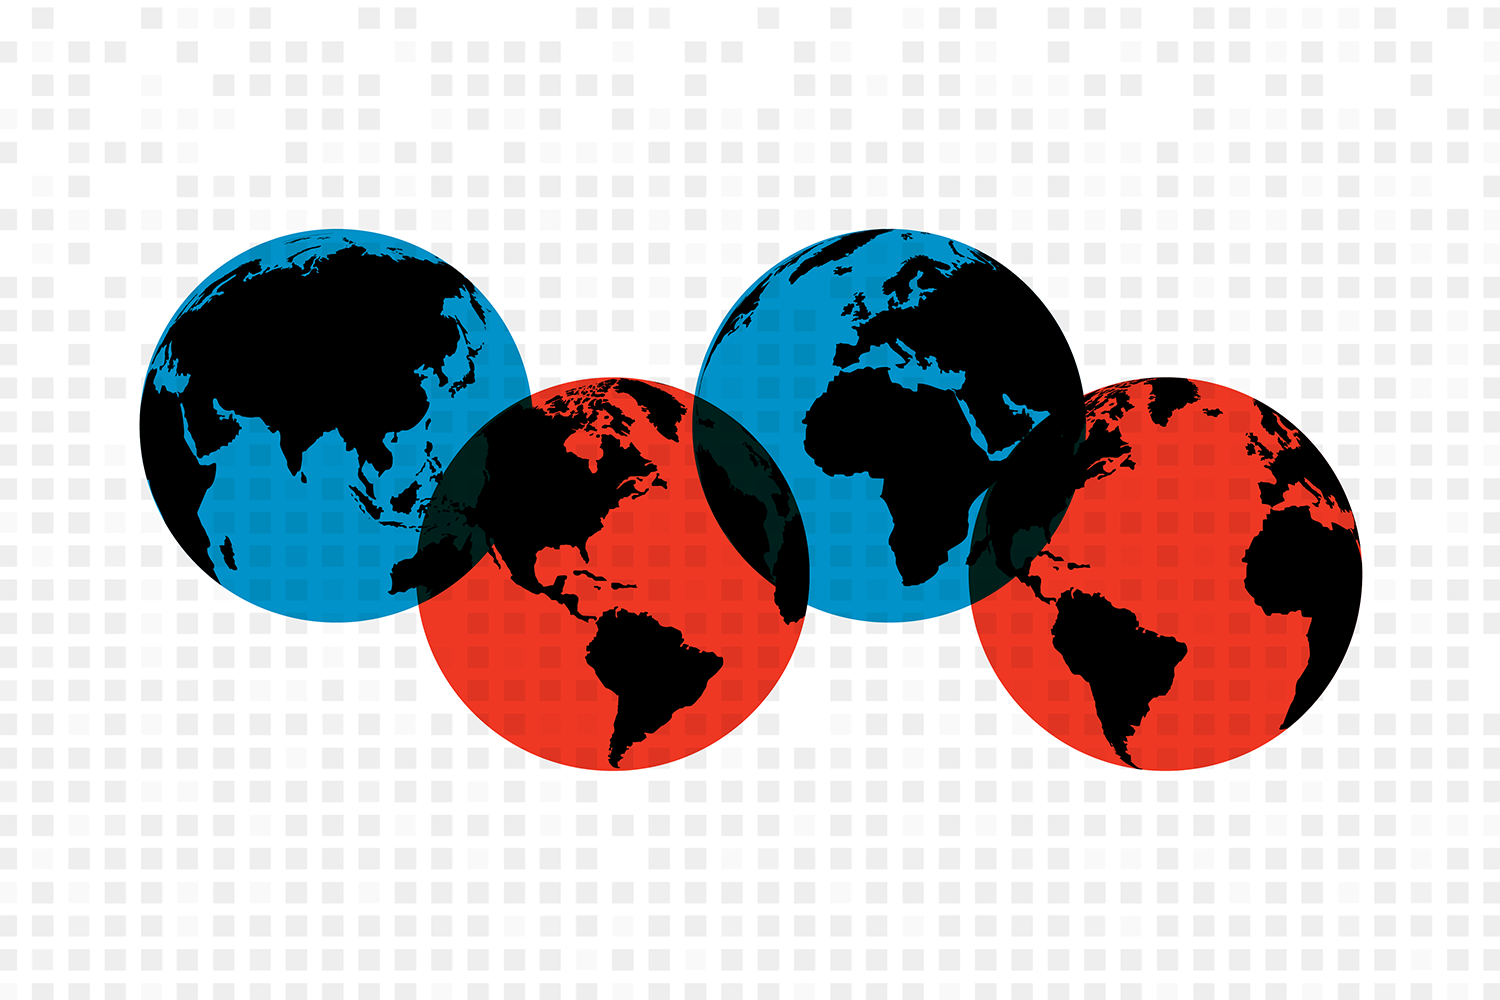 Understanding the Election: What It Means for the World